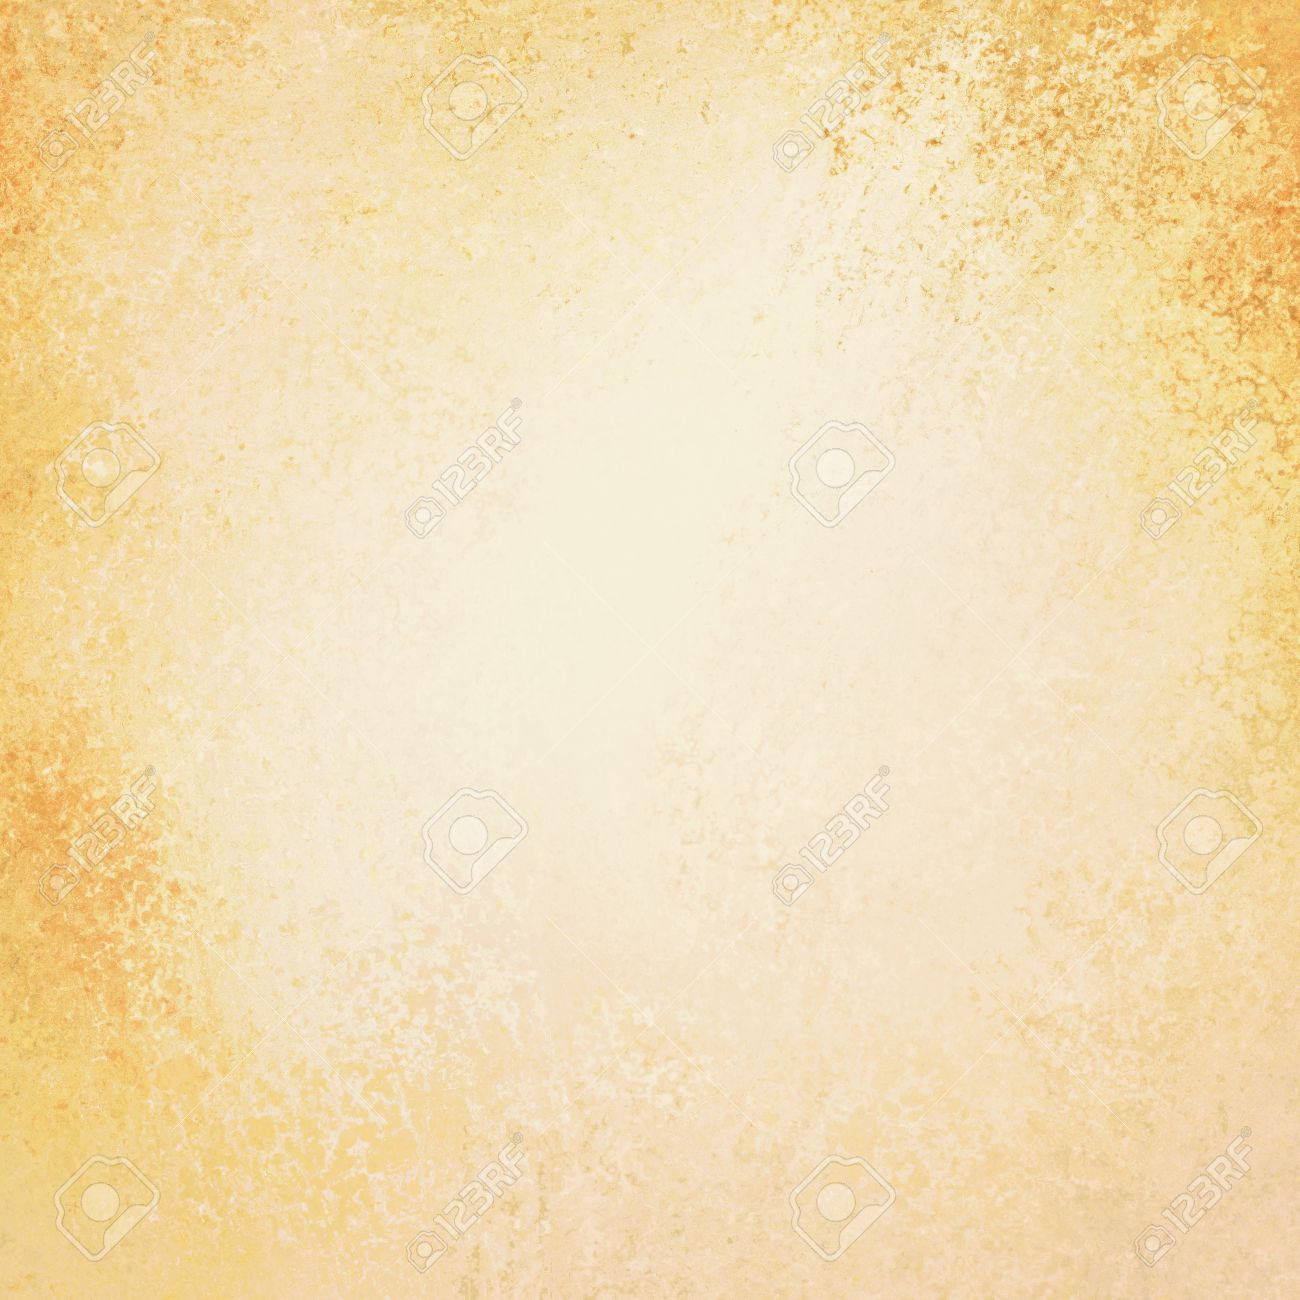 Old Paper Texture White Center With Orange And Yellow Grunge